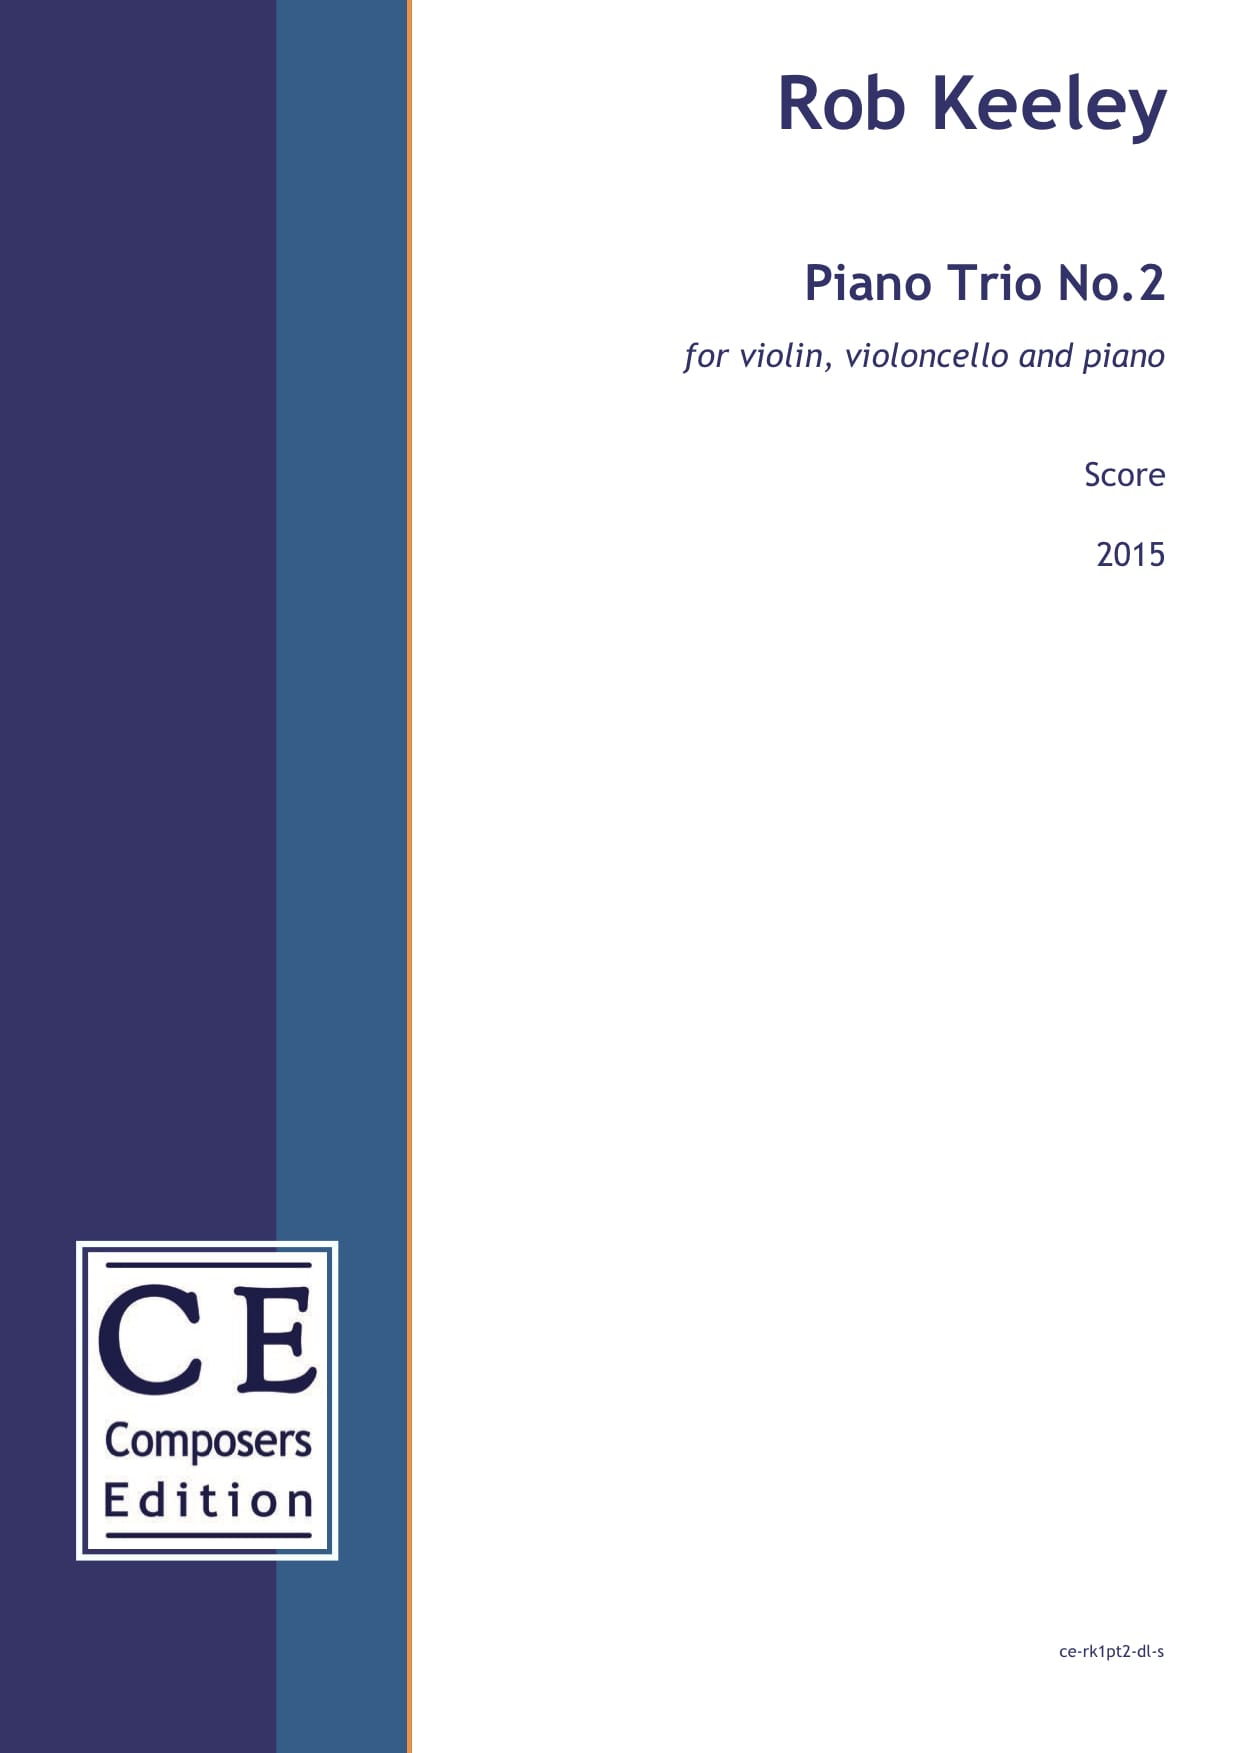 Rob Keeley: Piano Trio No.2 for violin, violoncello and piano